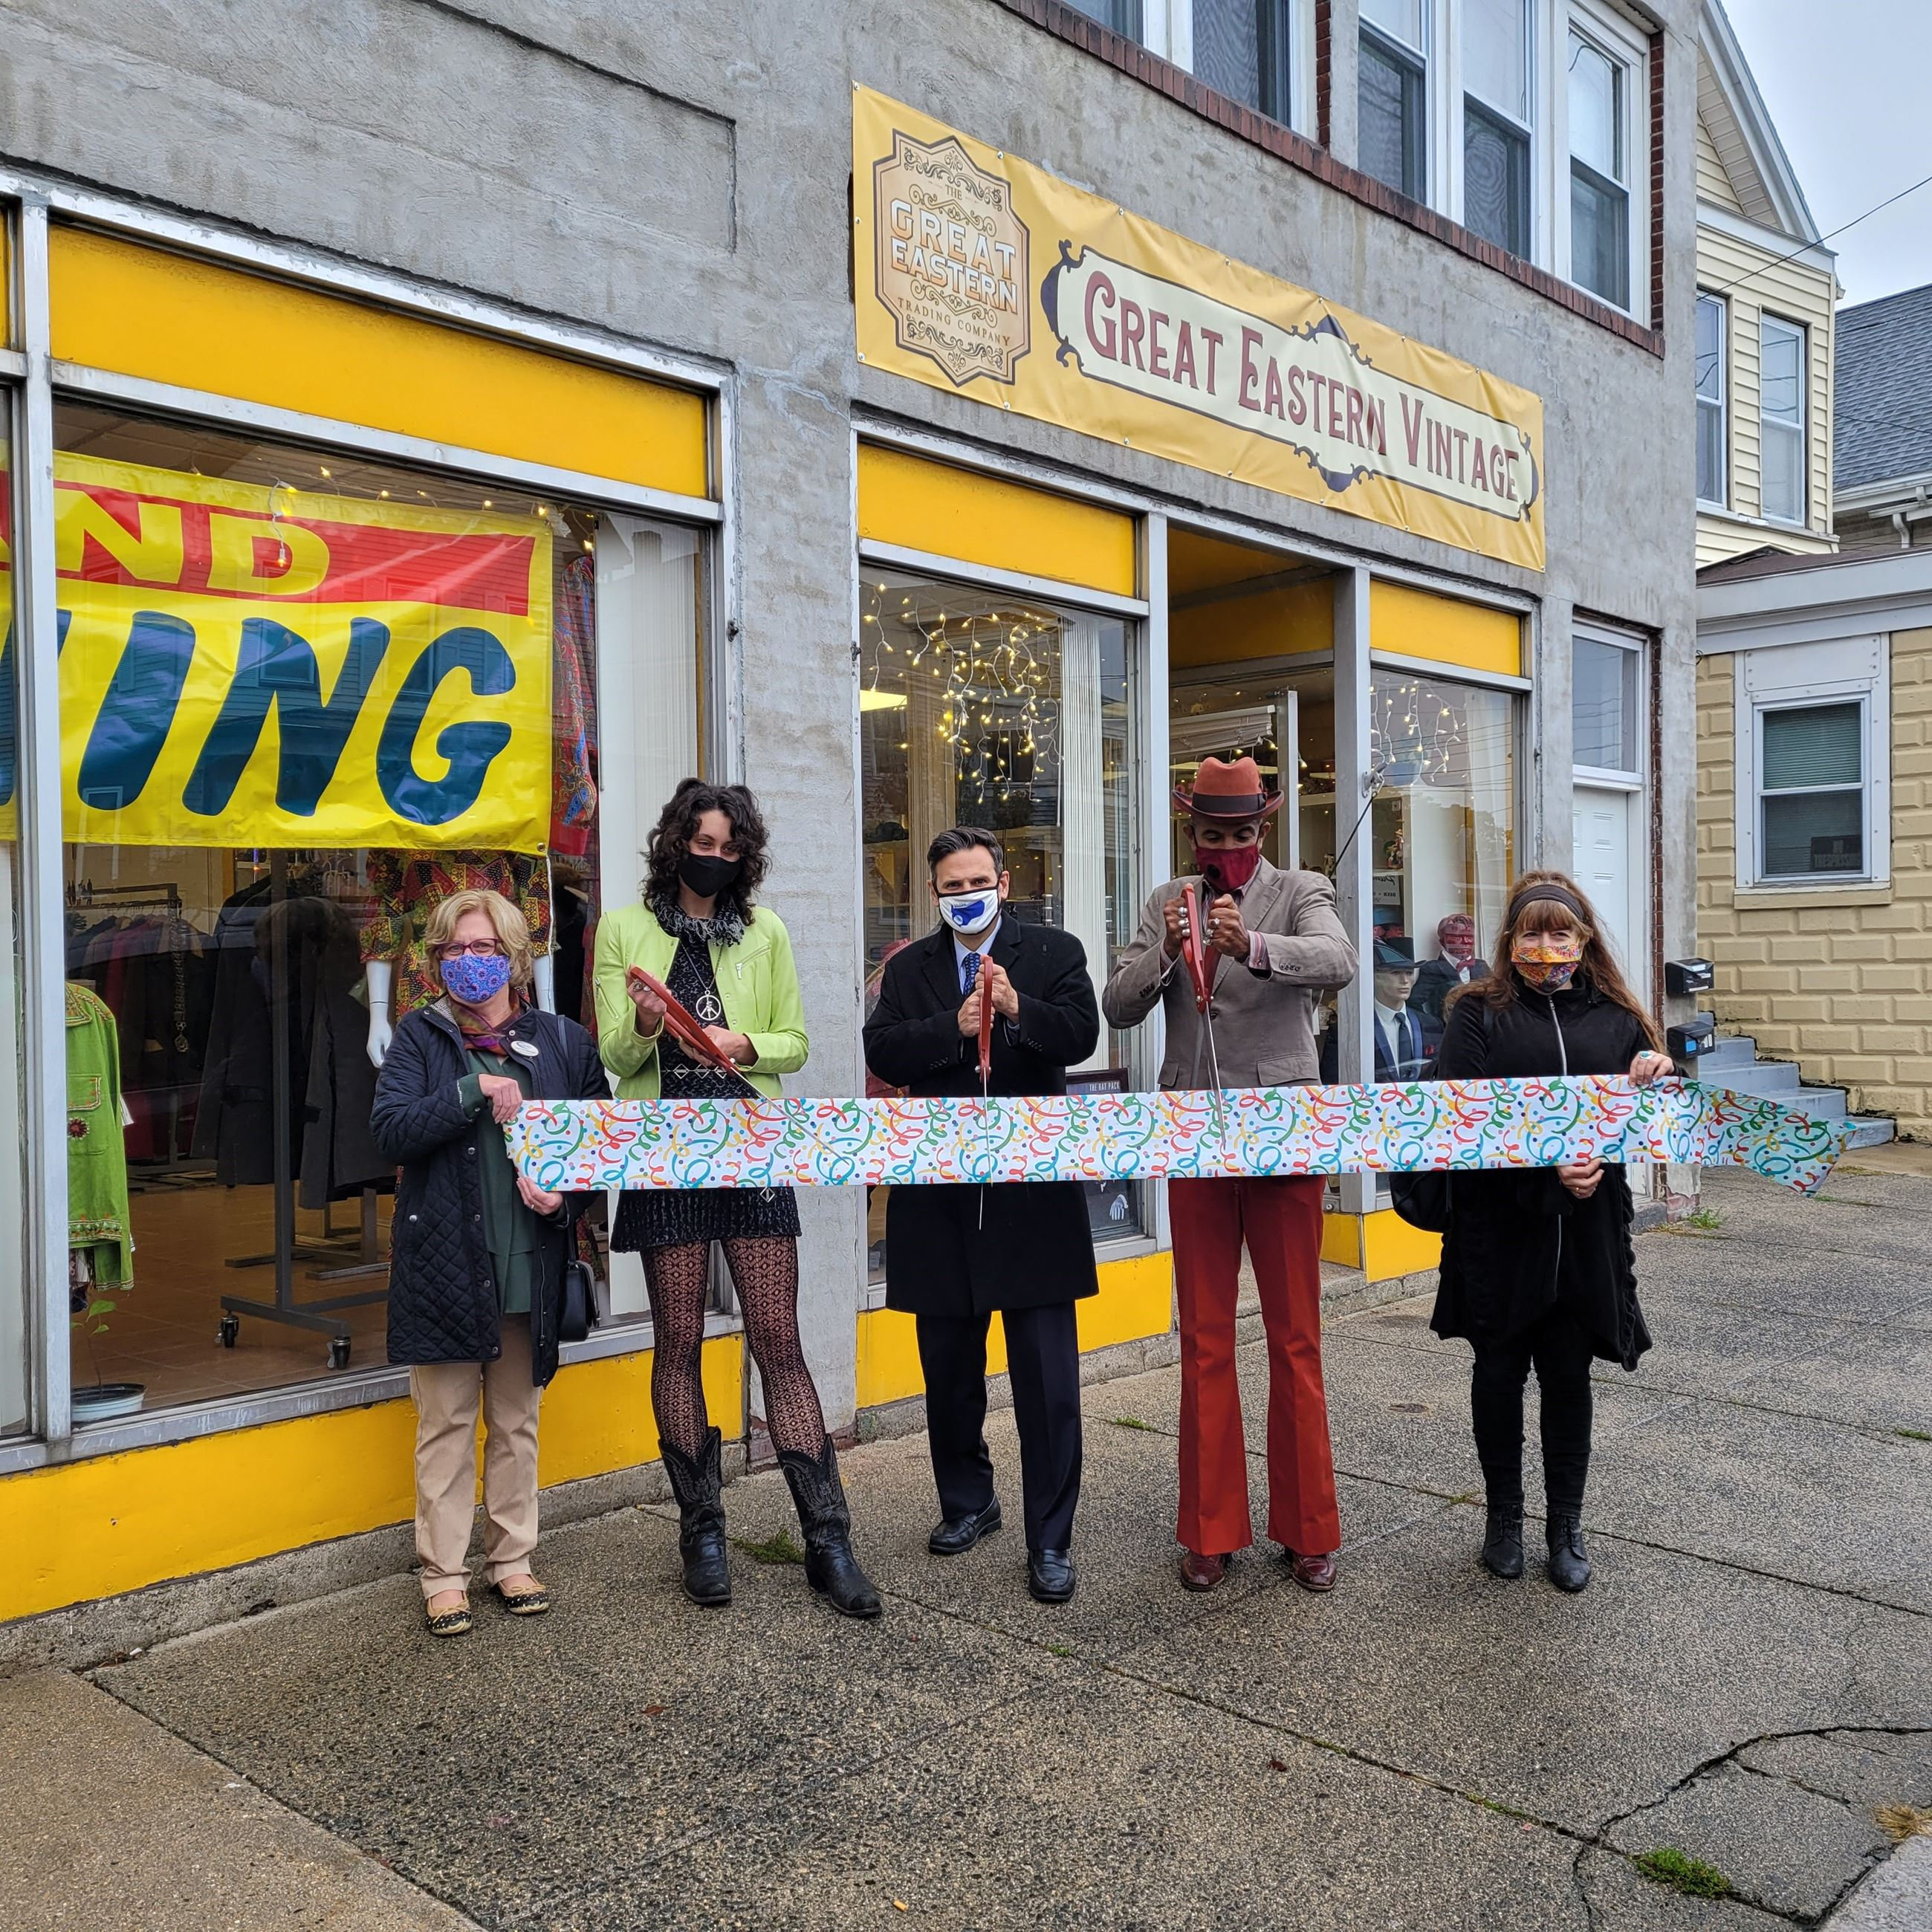 Great Eastern Vintage Ribbon Cutting